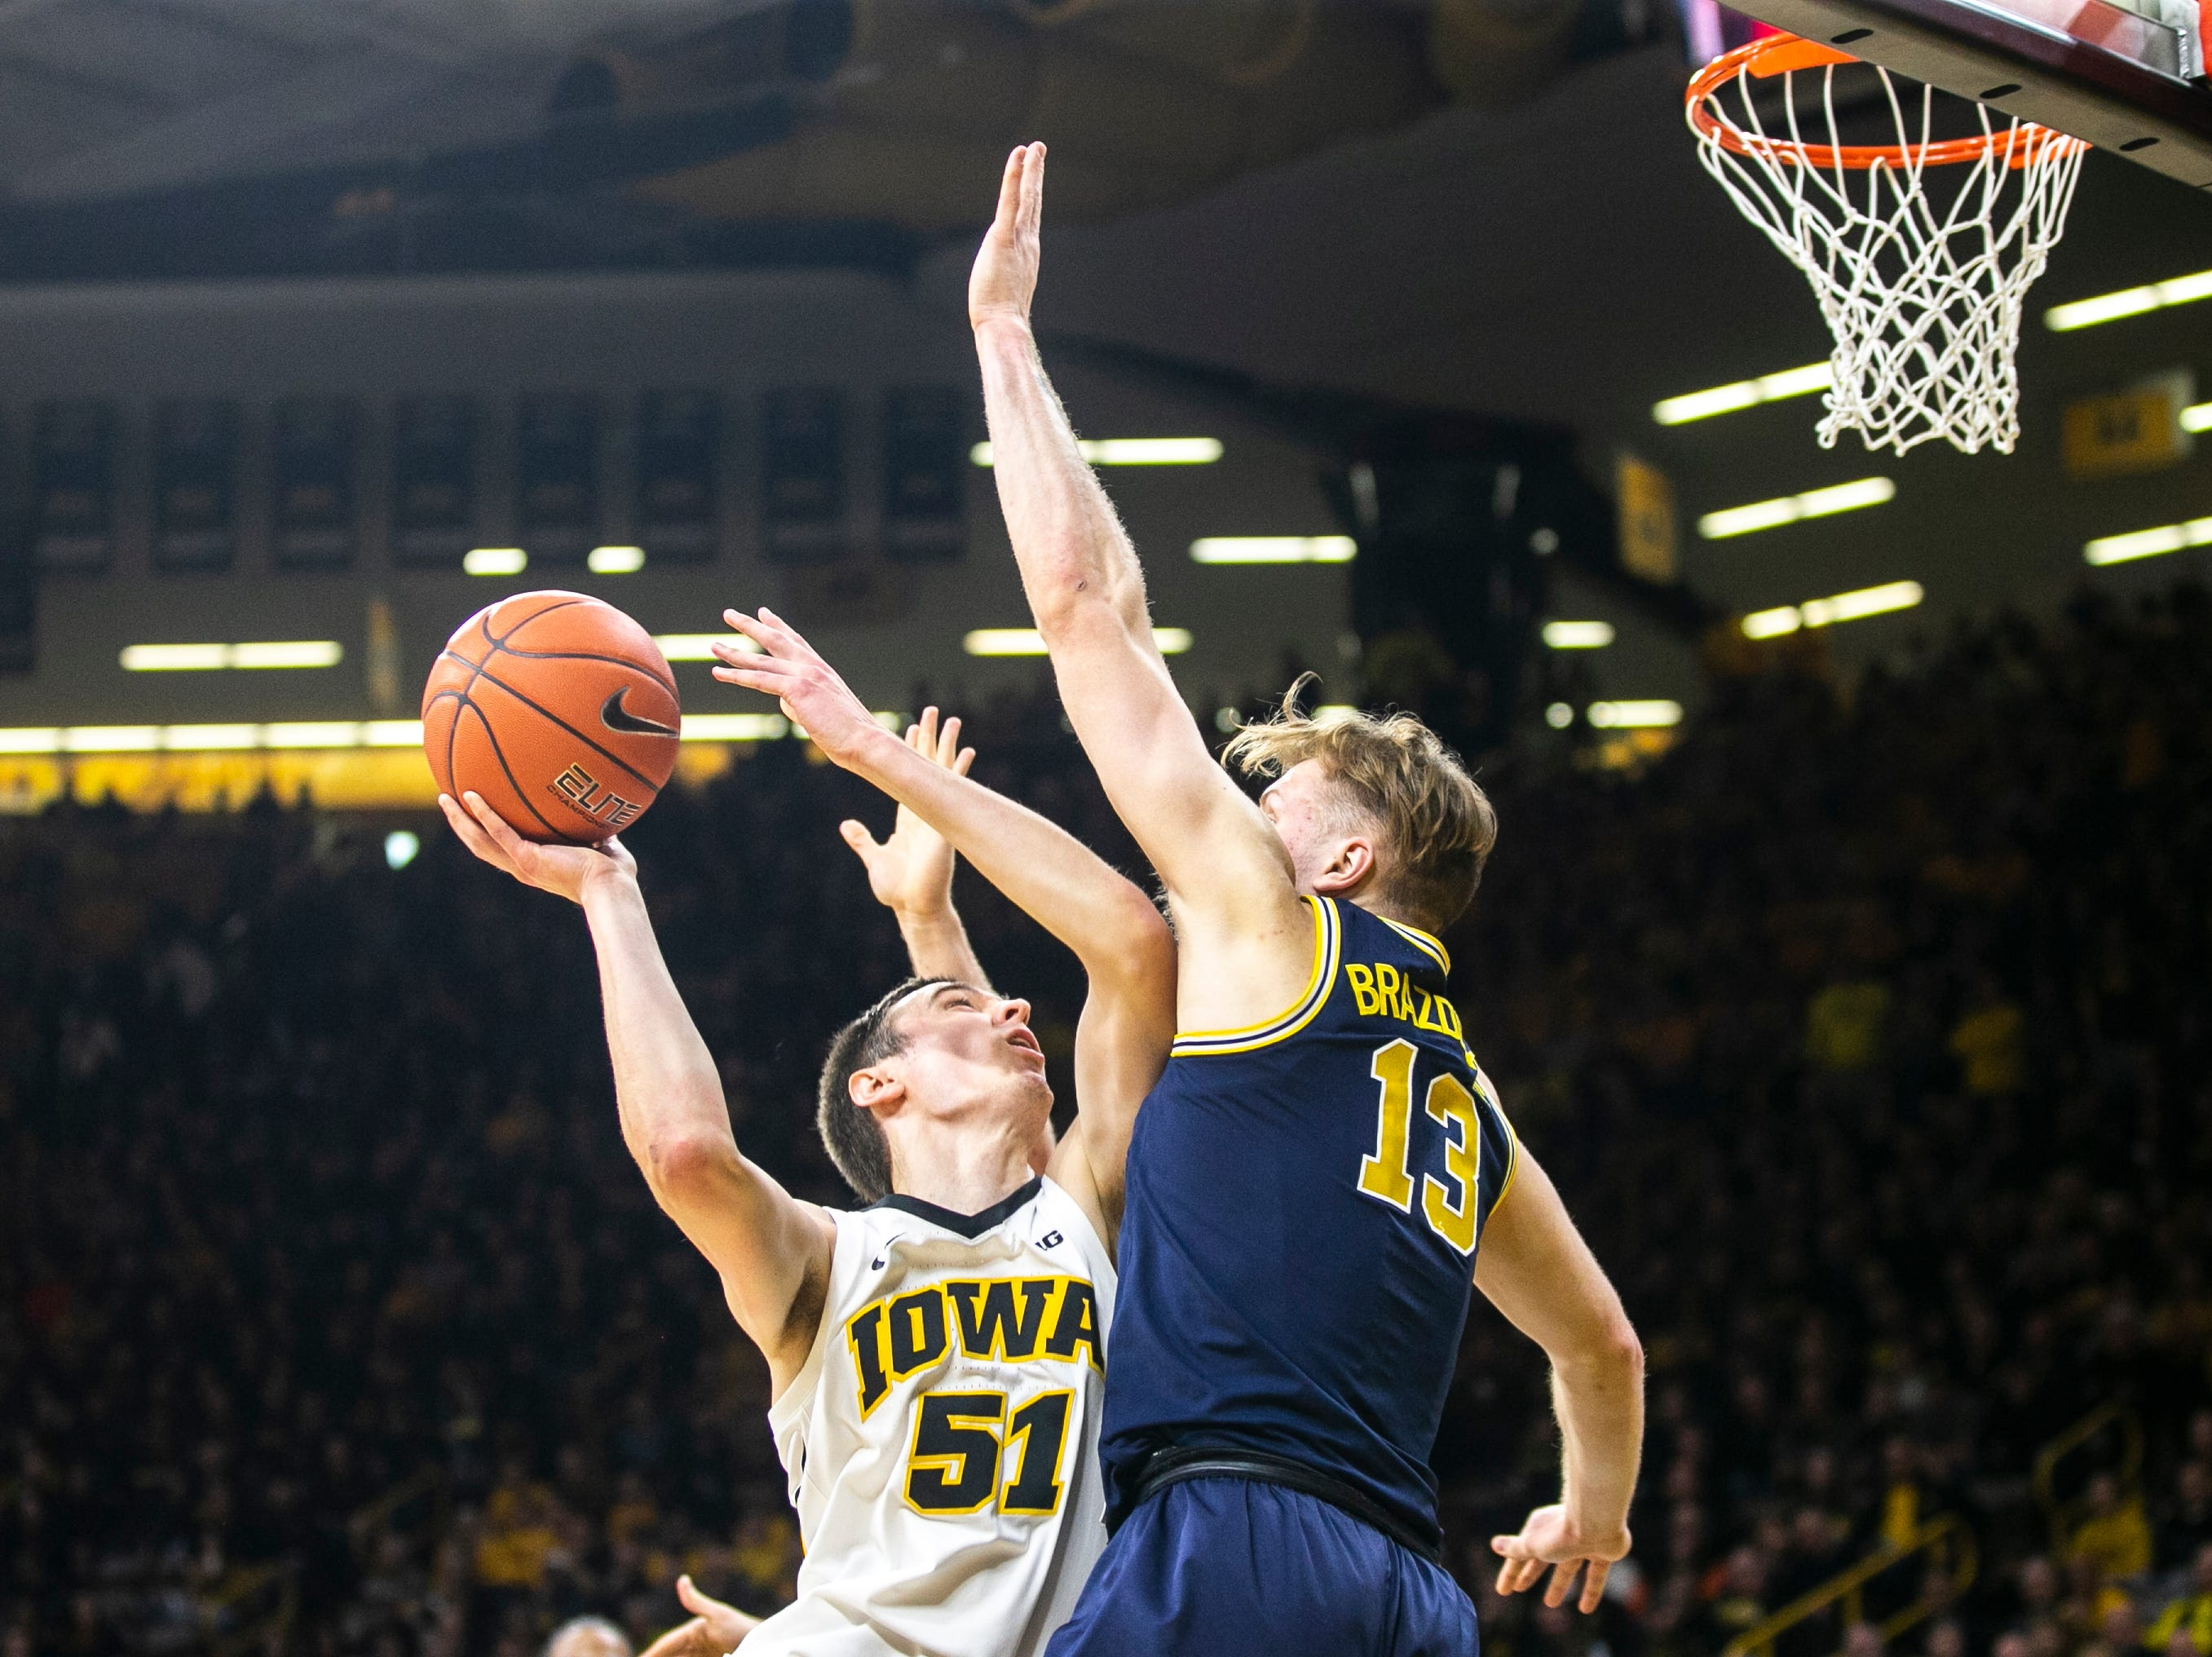 Iowa forward Nicholas Baer (51) gets fouled by Michigan forward Ignas Brazdeikis (13) during a NCAA Big Ten Conference men's basketball game on Friday, Feb. 1, 2019, at Carver-Hawkeye Arena in Iowa City, Iowa.